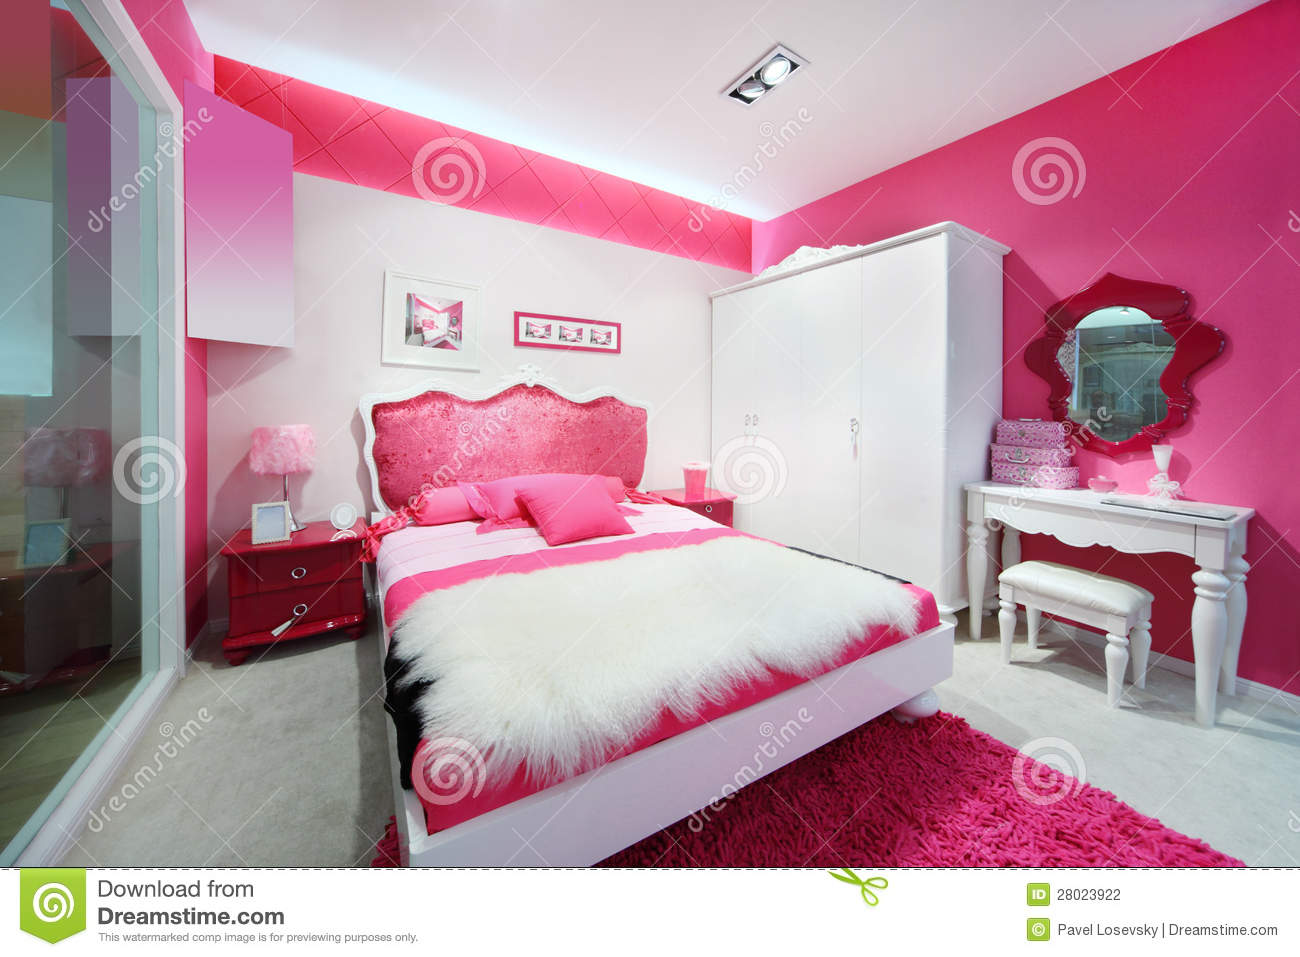 Stylish Pink White Beautiful Bedroom Stock Photo   Image Of Luxury,  Pillows: 28023922